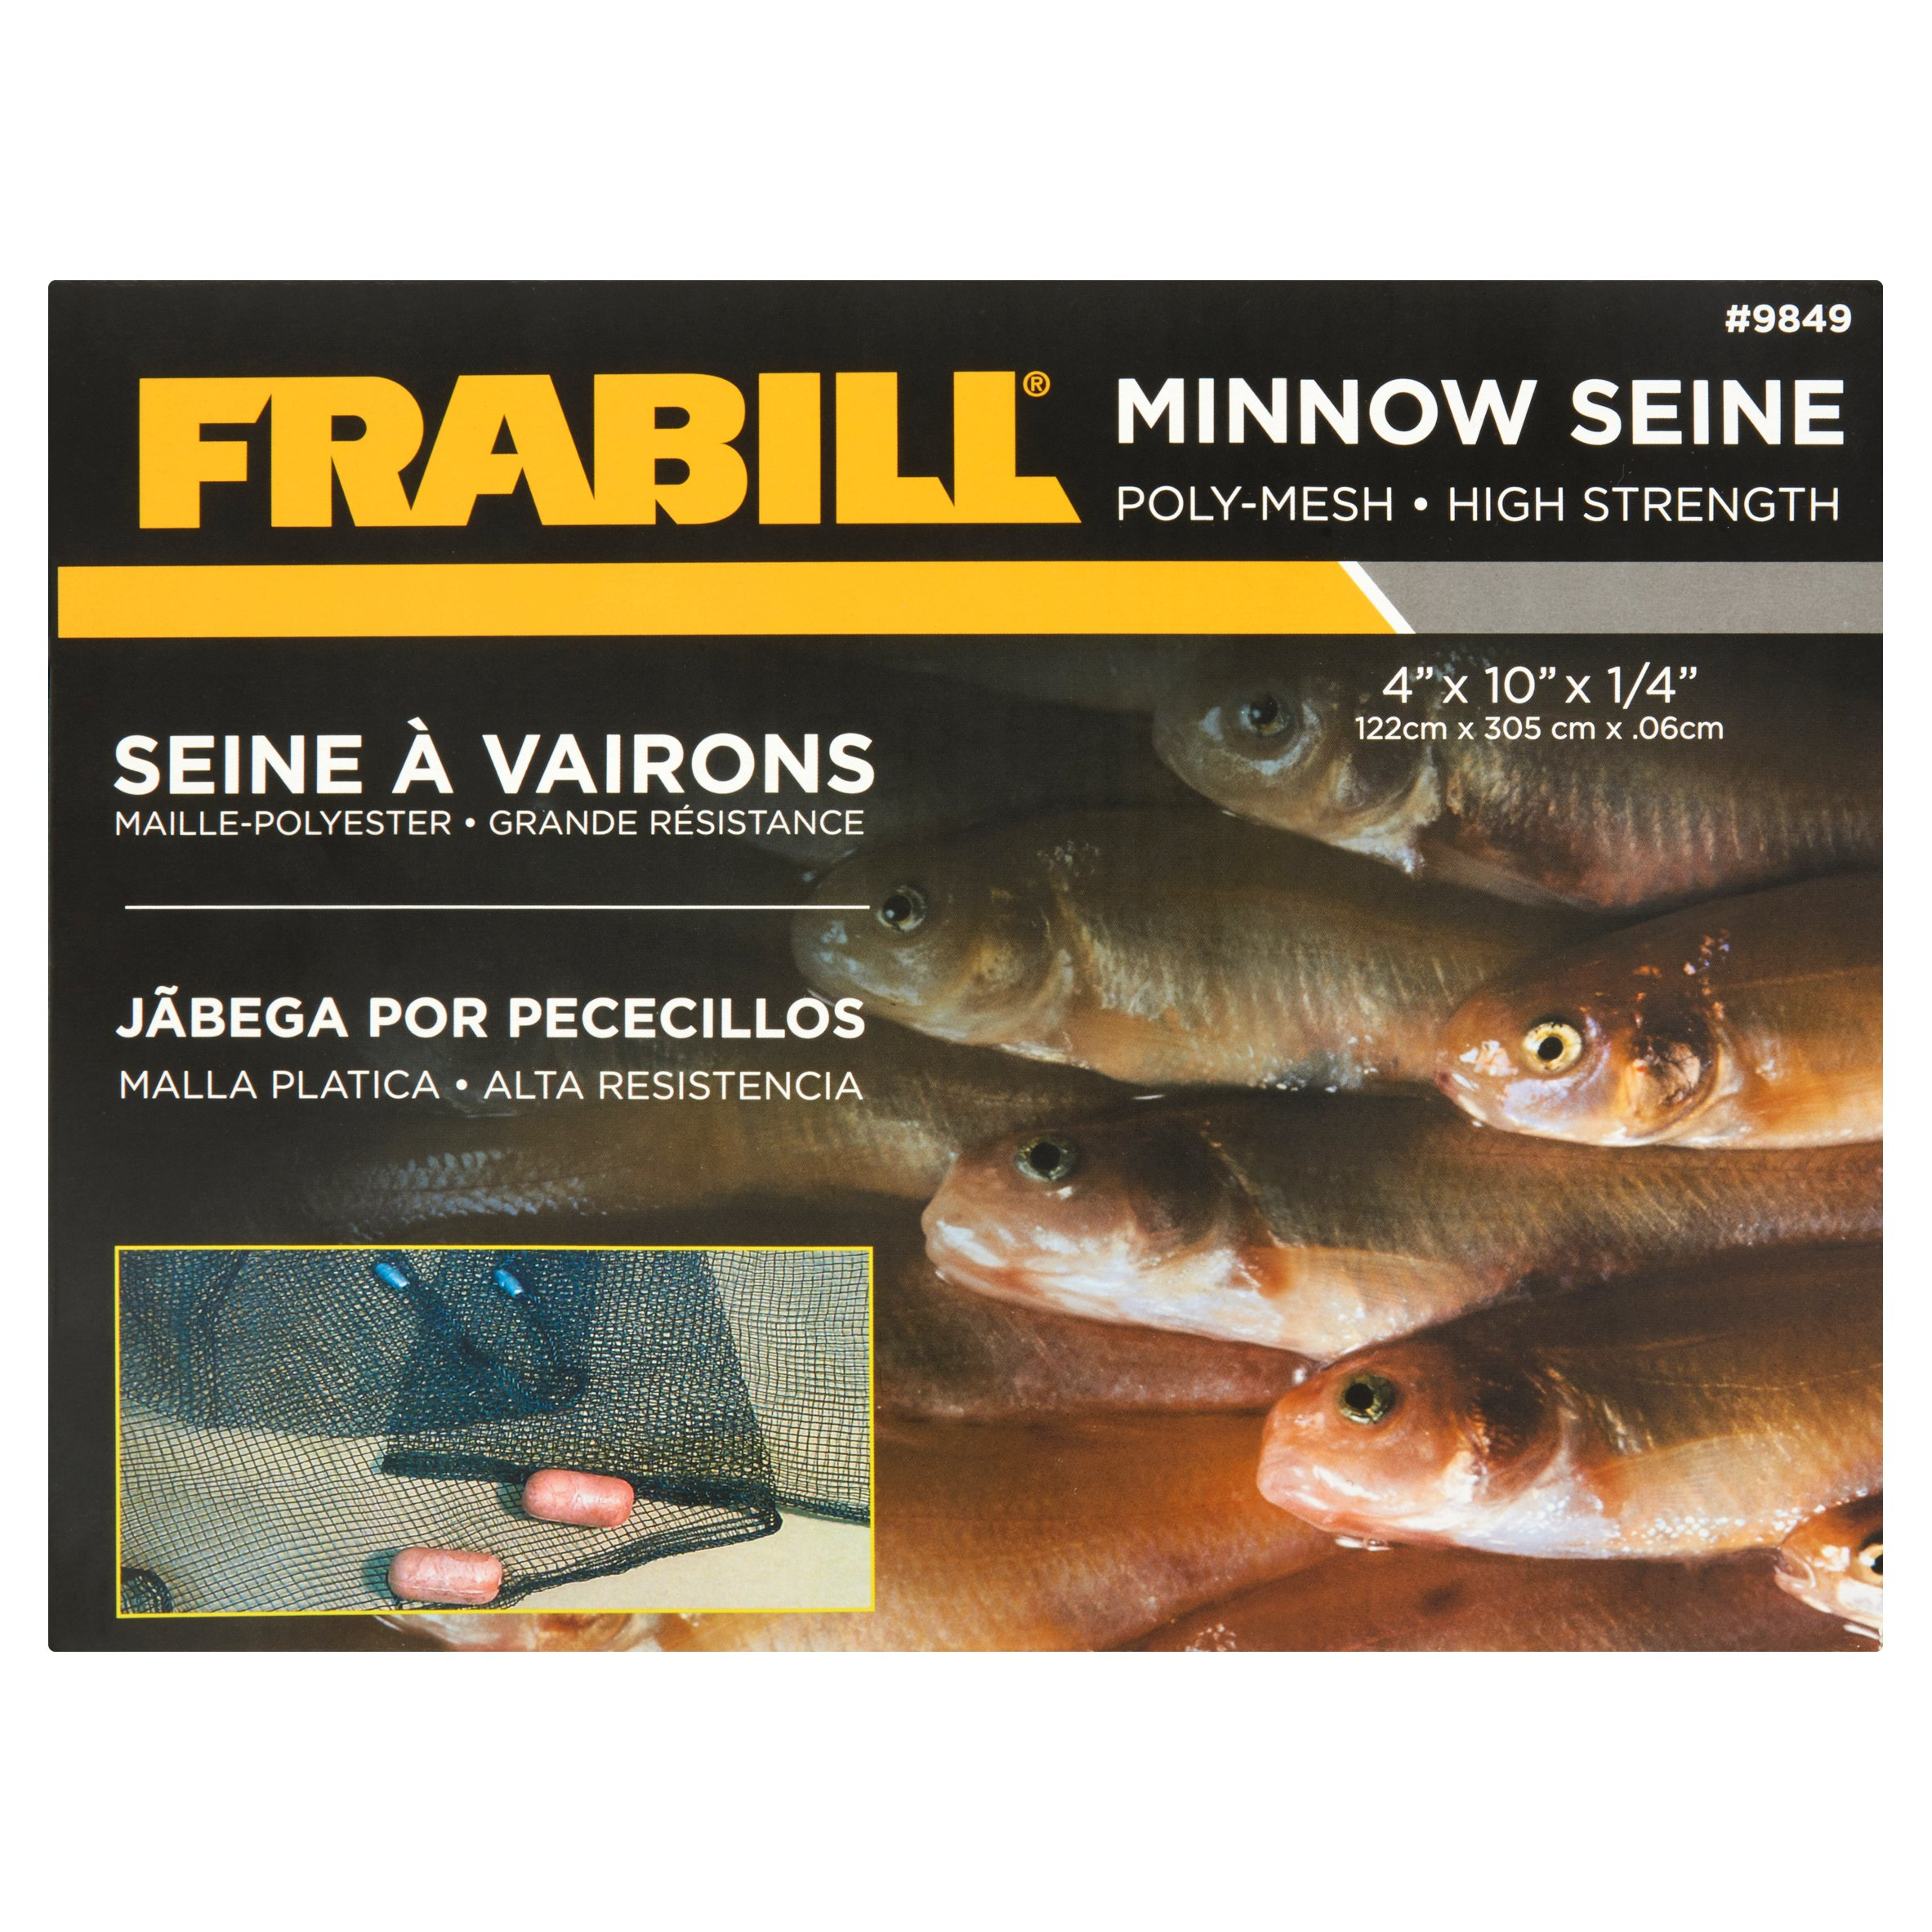 Frabill Poly-Mesh High Strength Minnow Seine